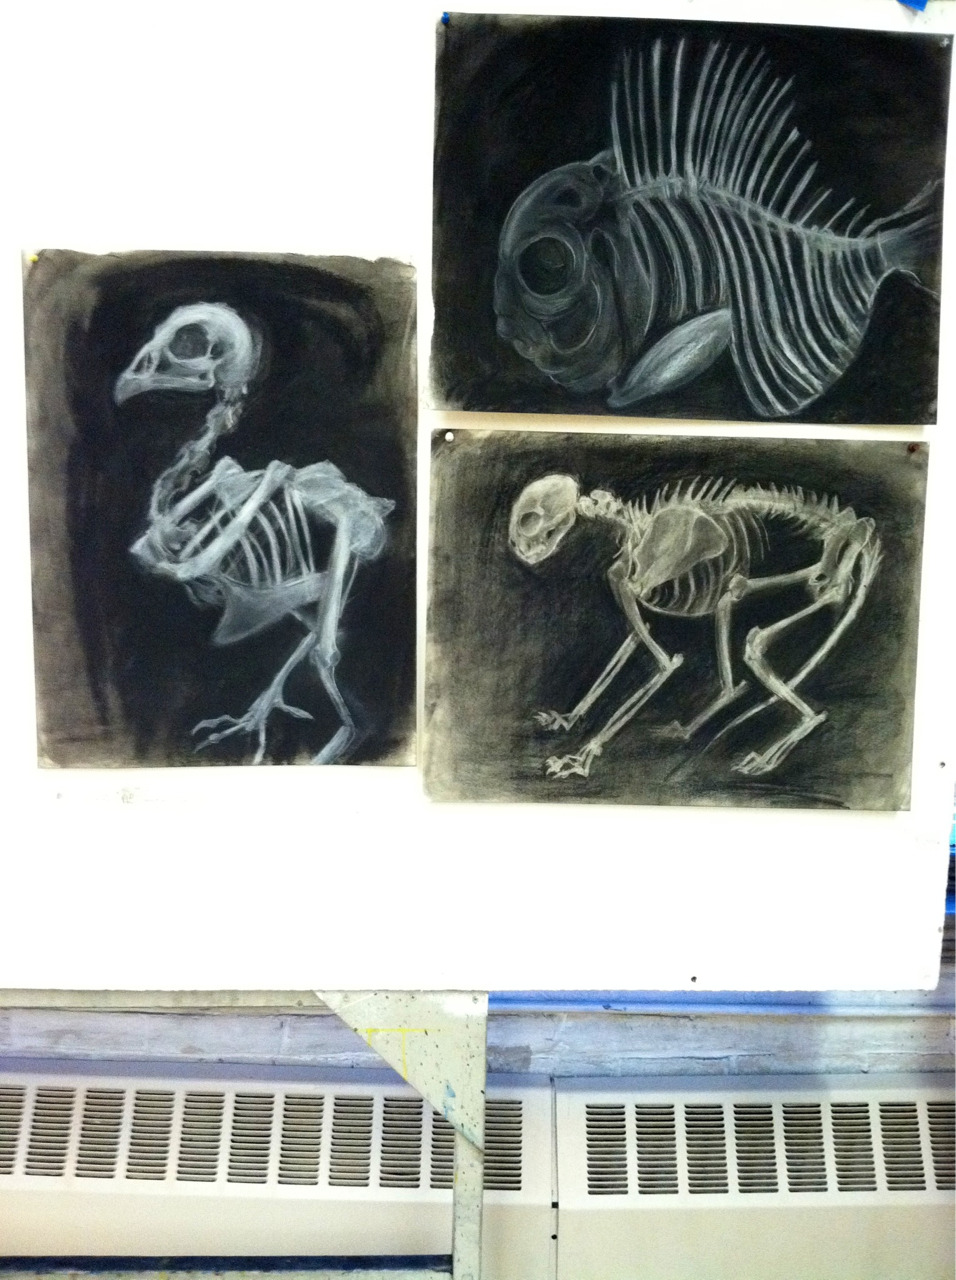 Skeletal studies